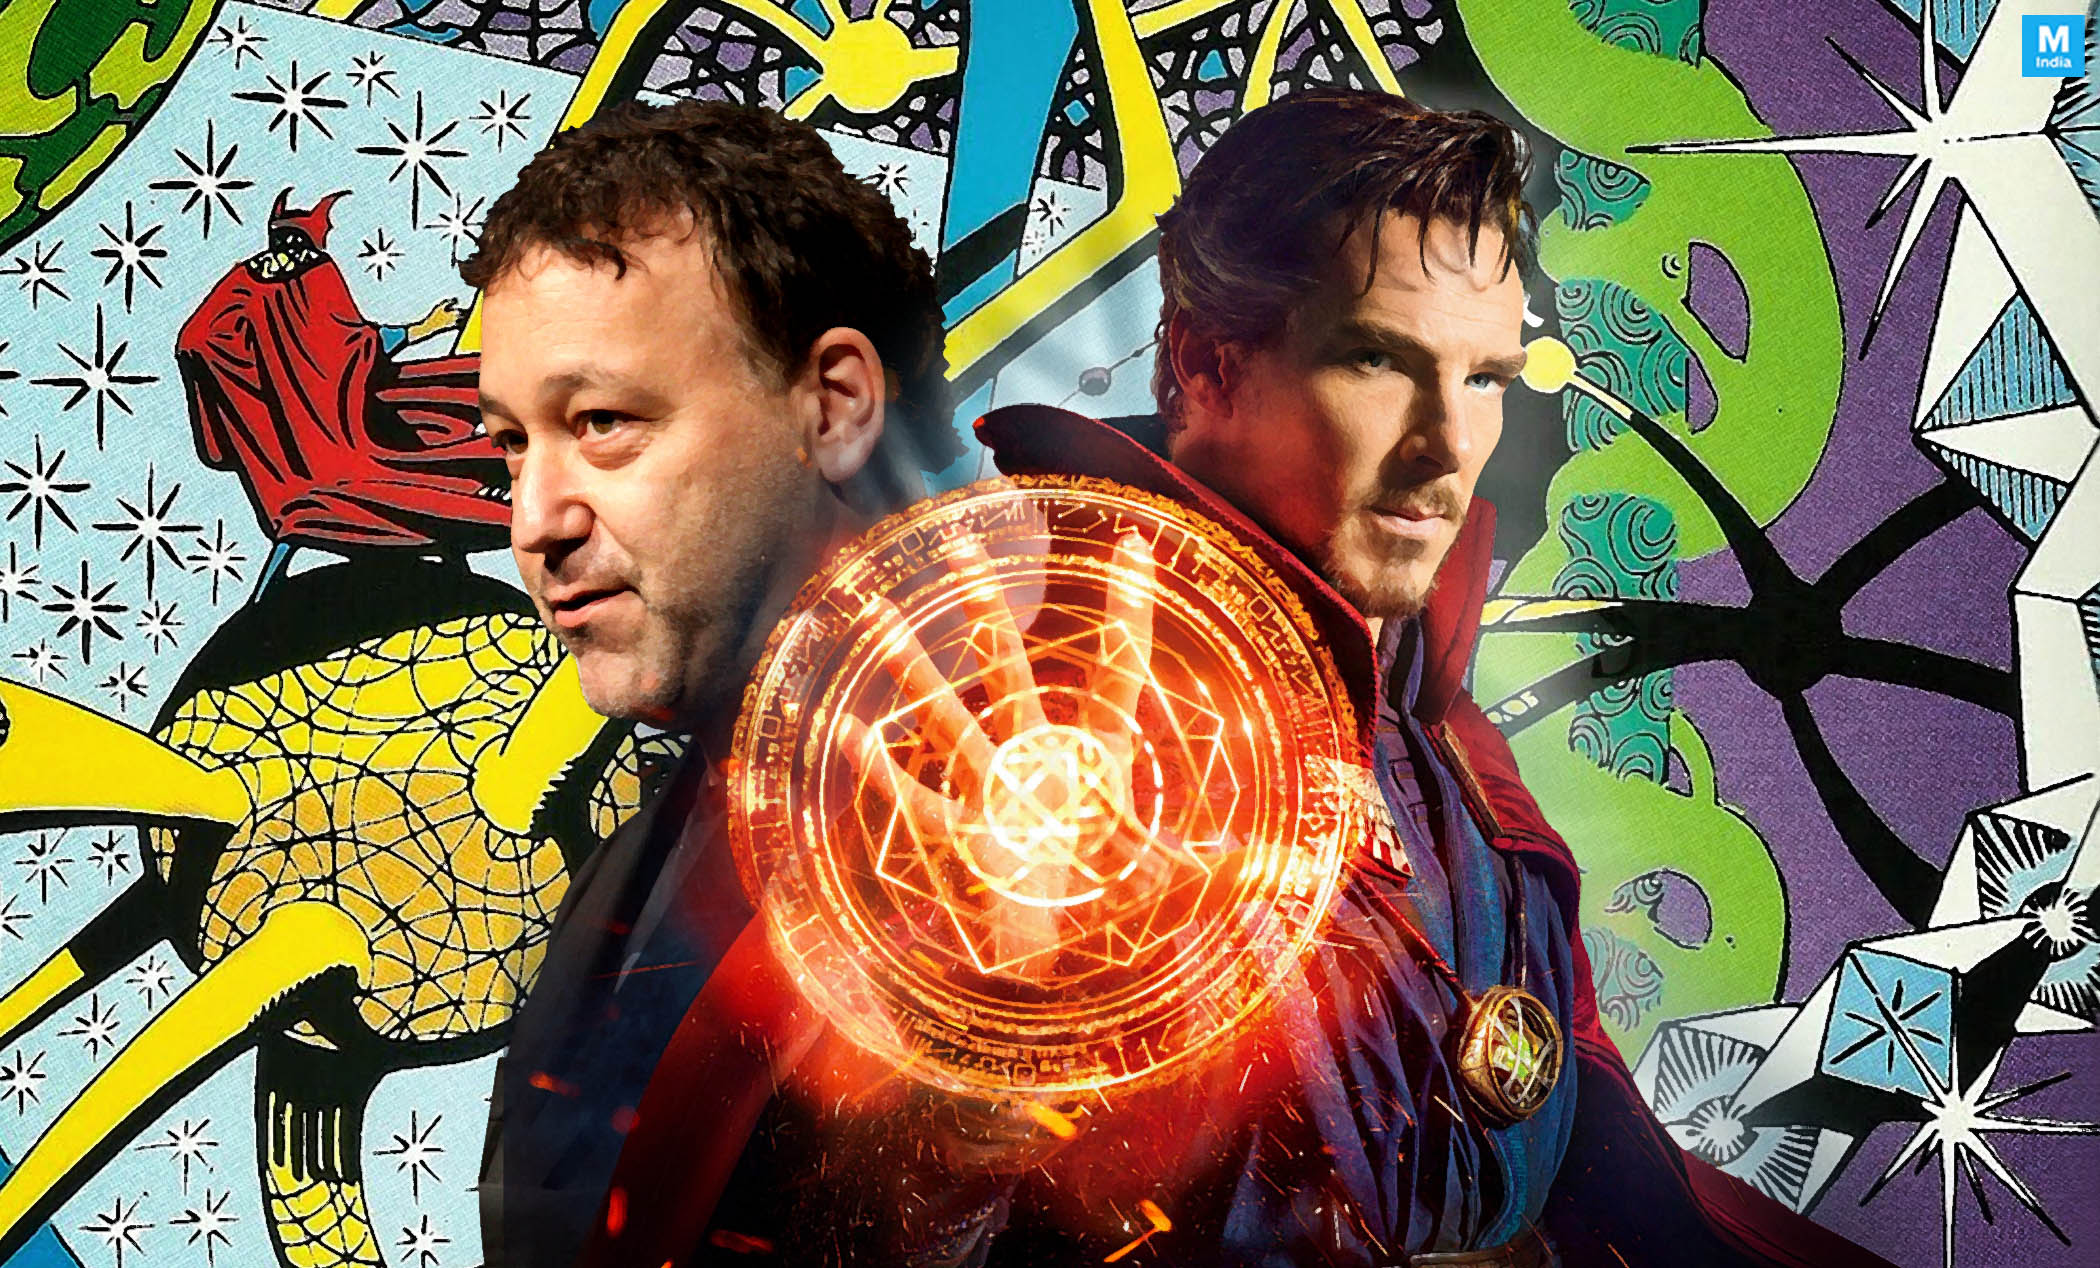 Sam Raimi confirma ser director de Doctor Strange in the Multiverse of Madness